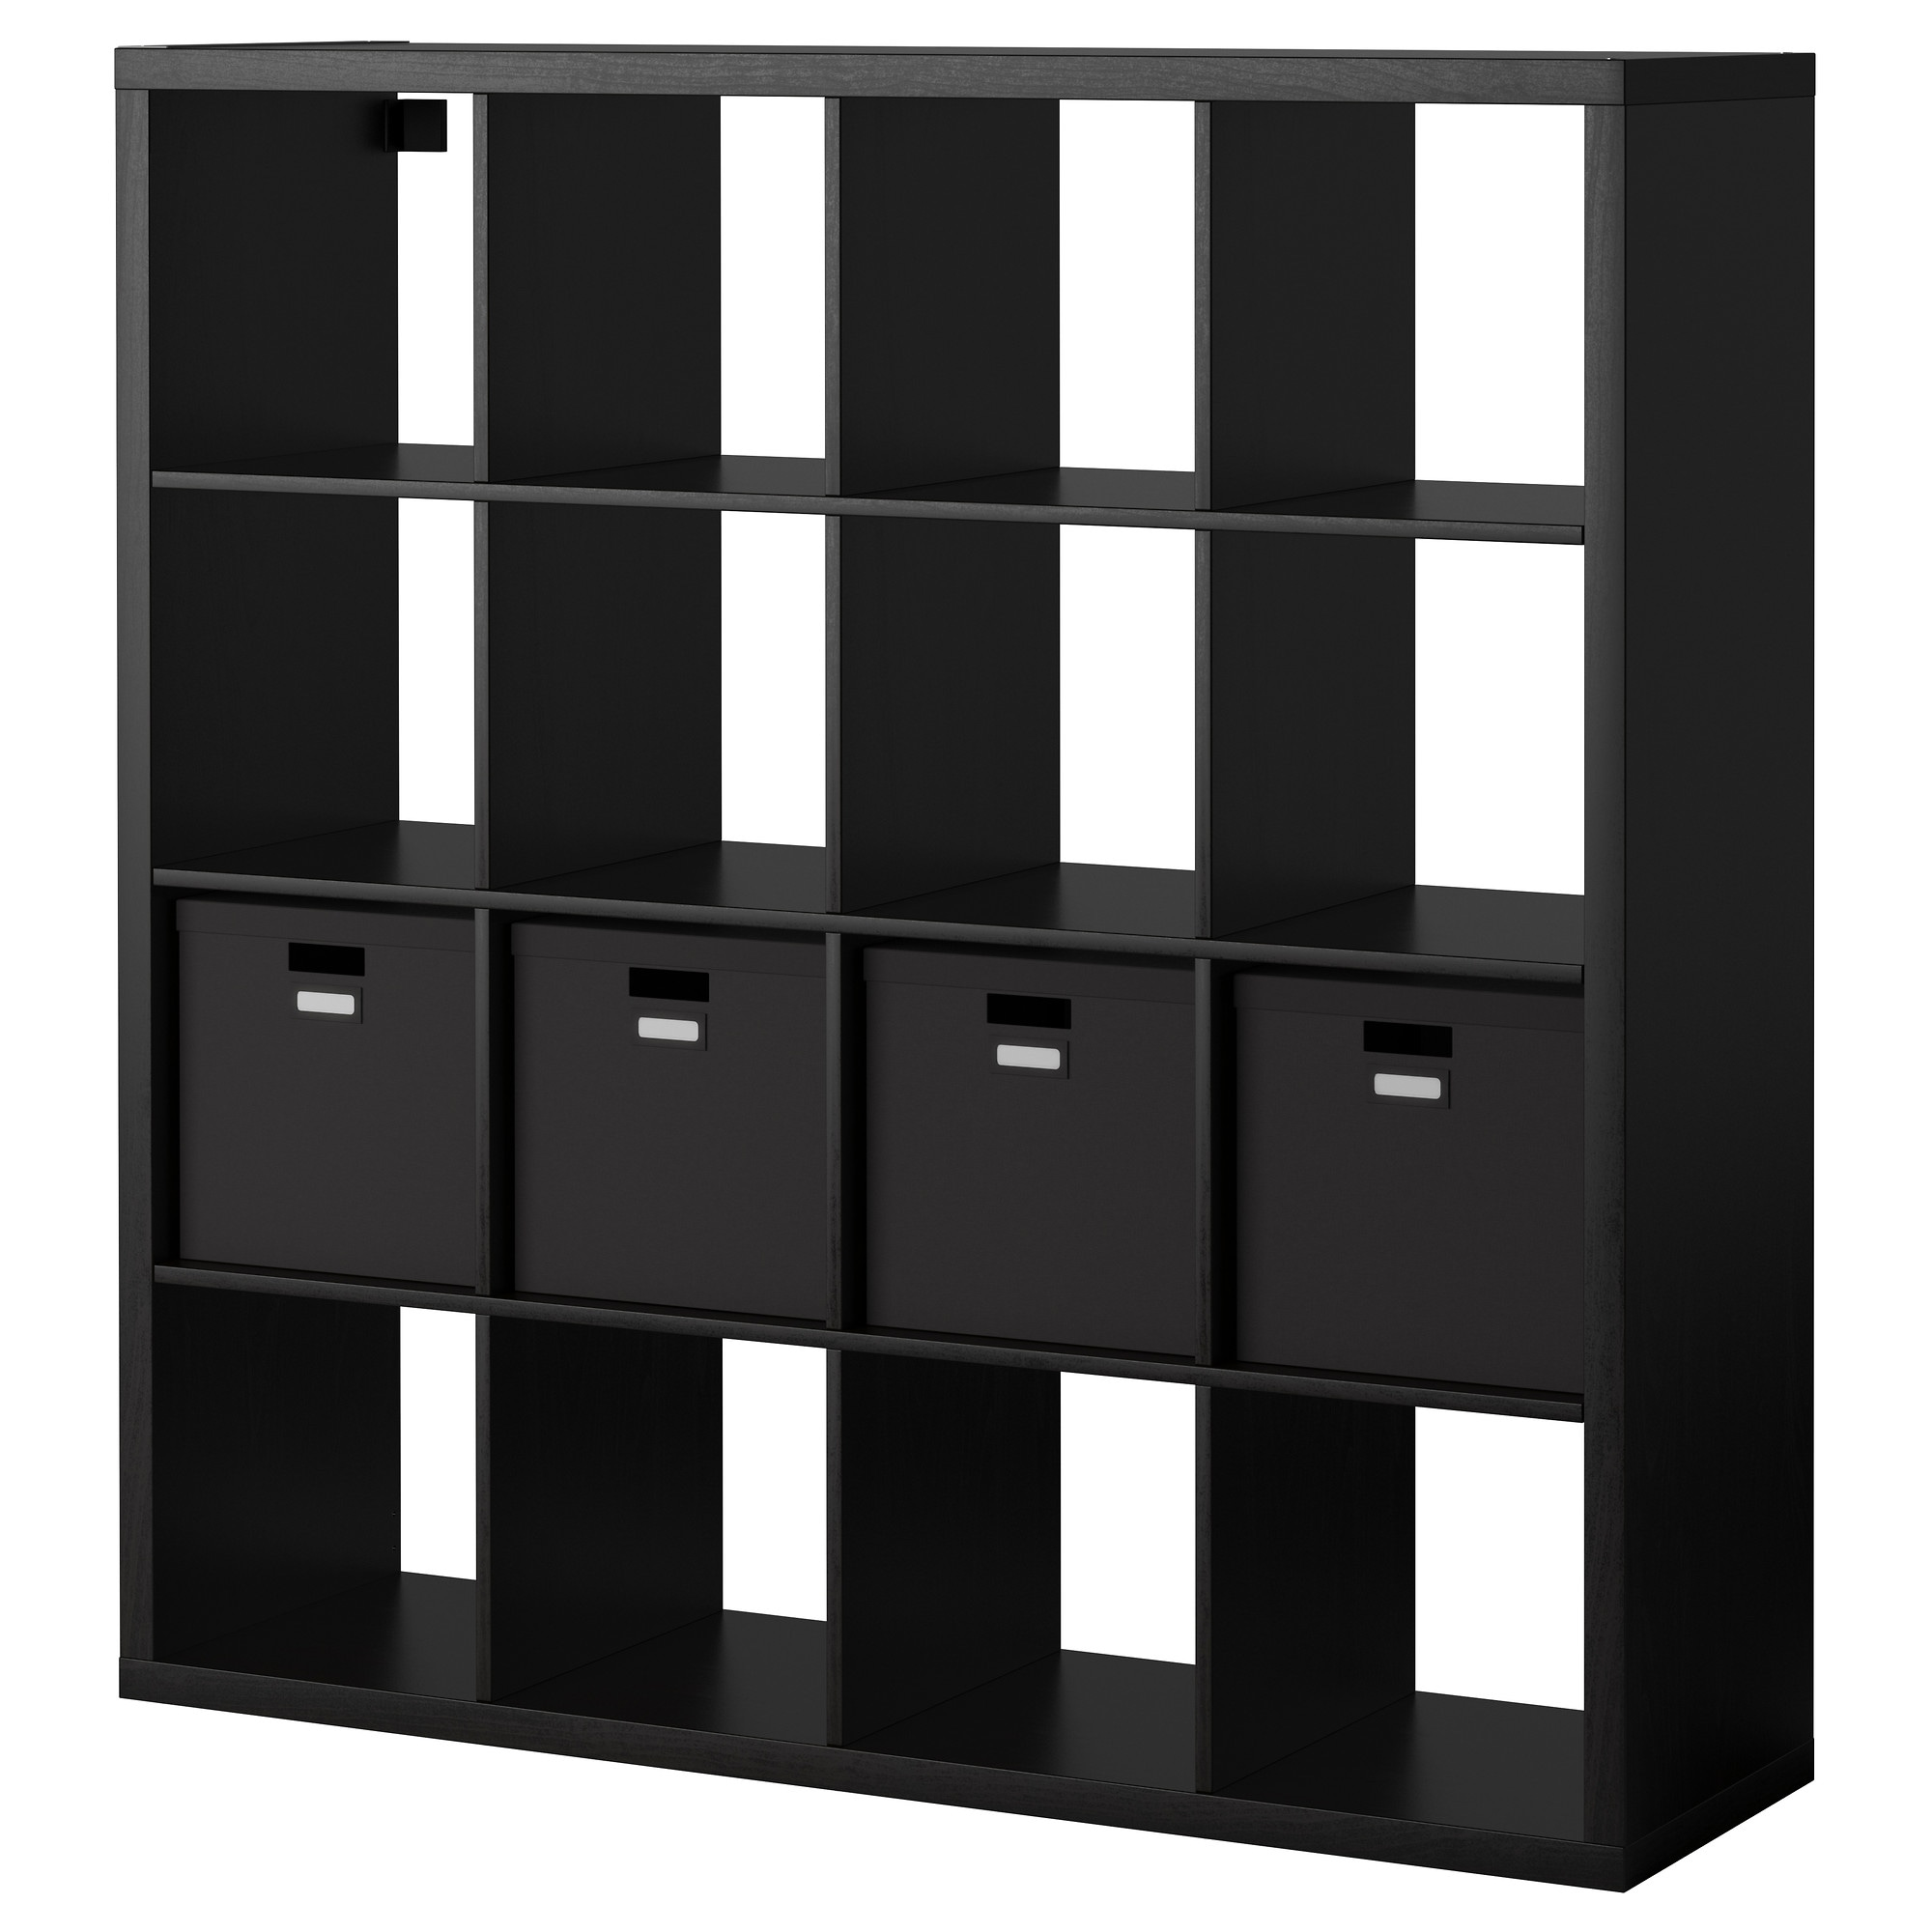 ikea regale m bel einebinsenweisheit. Black Bedroom Furniture Sets. Home Design Ideas